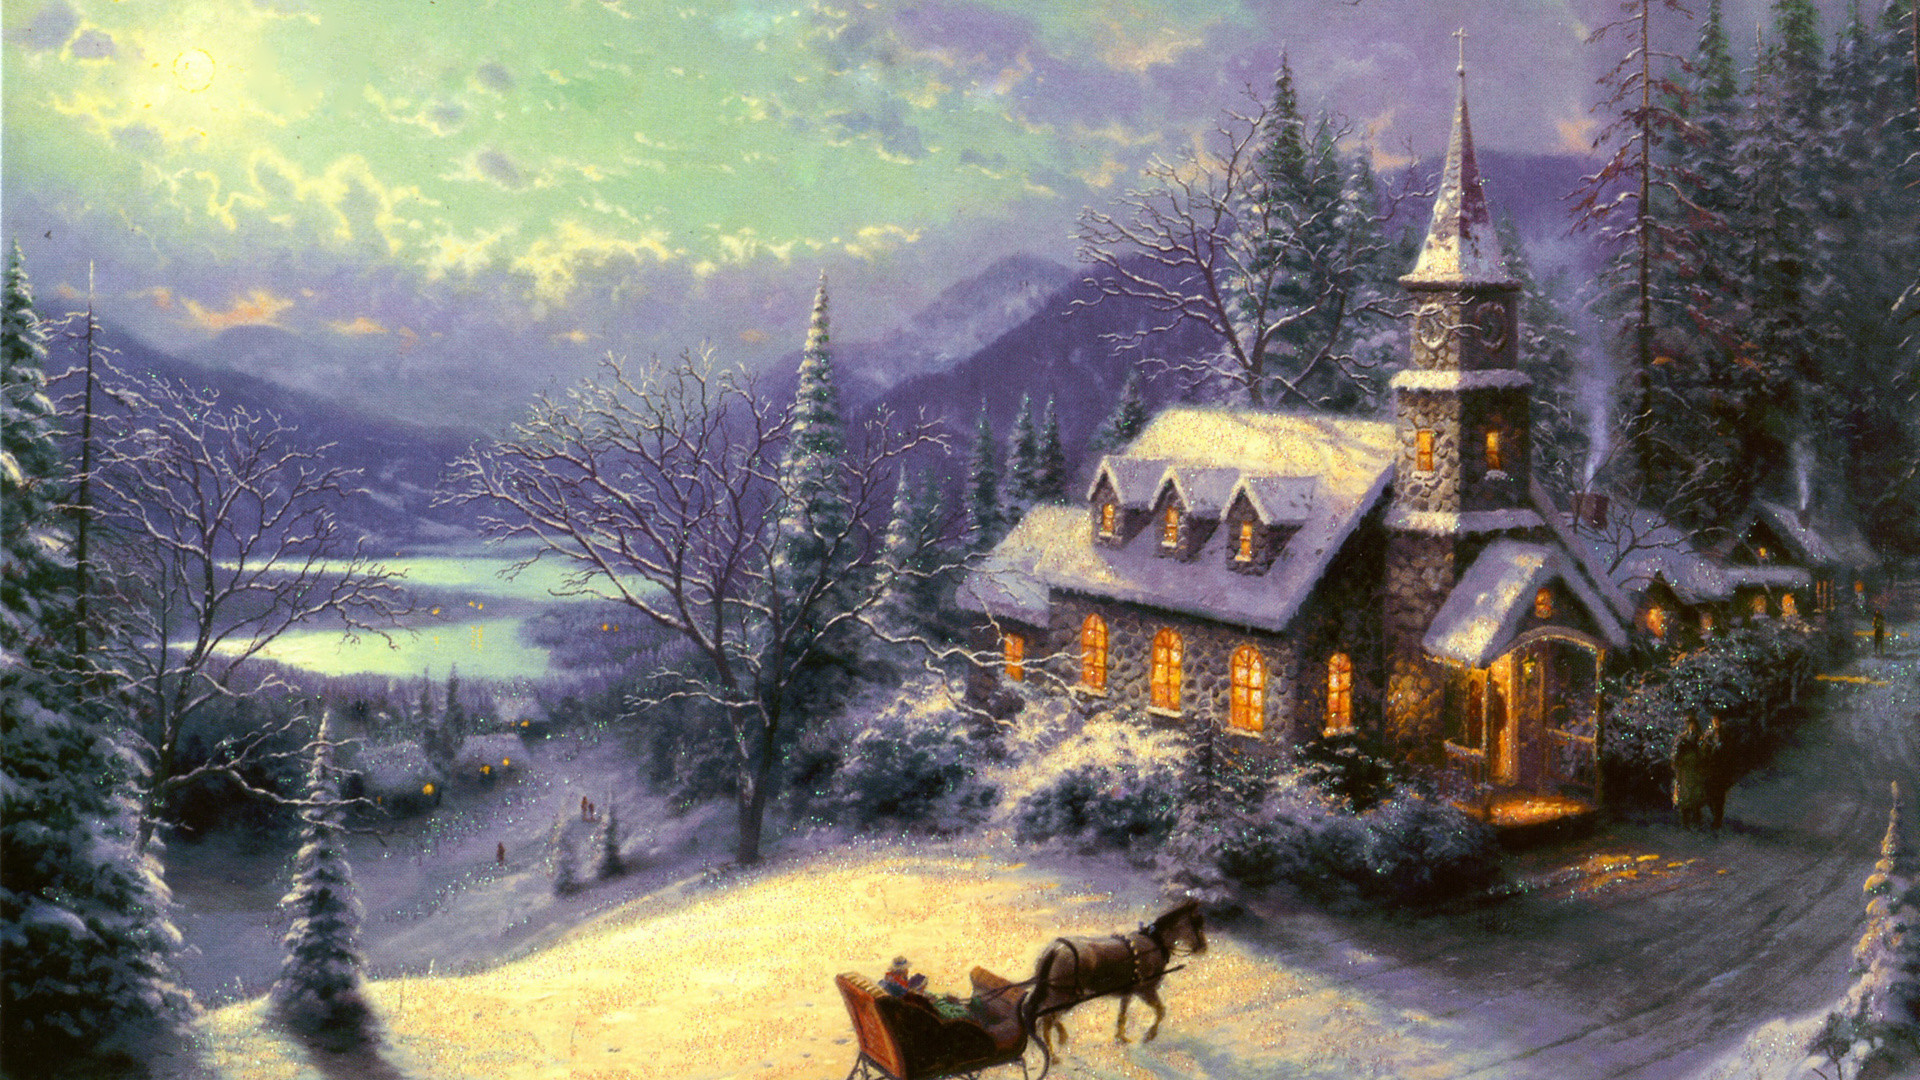 1920x1080 thomas kinkade christmas wallpaper – 1920×1080 High Definition .